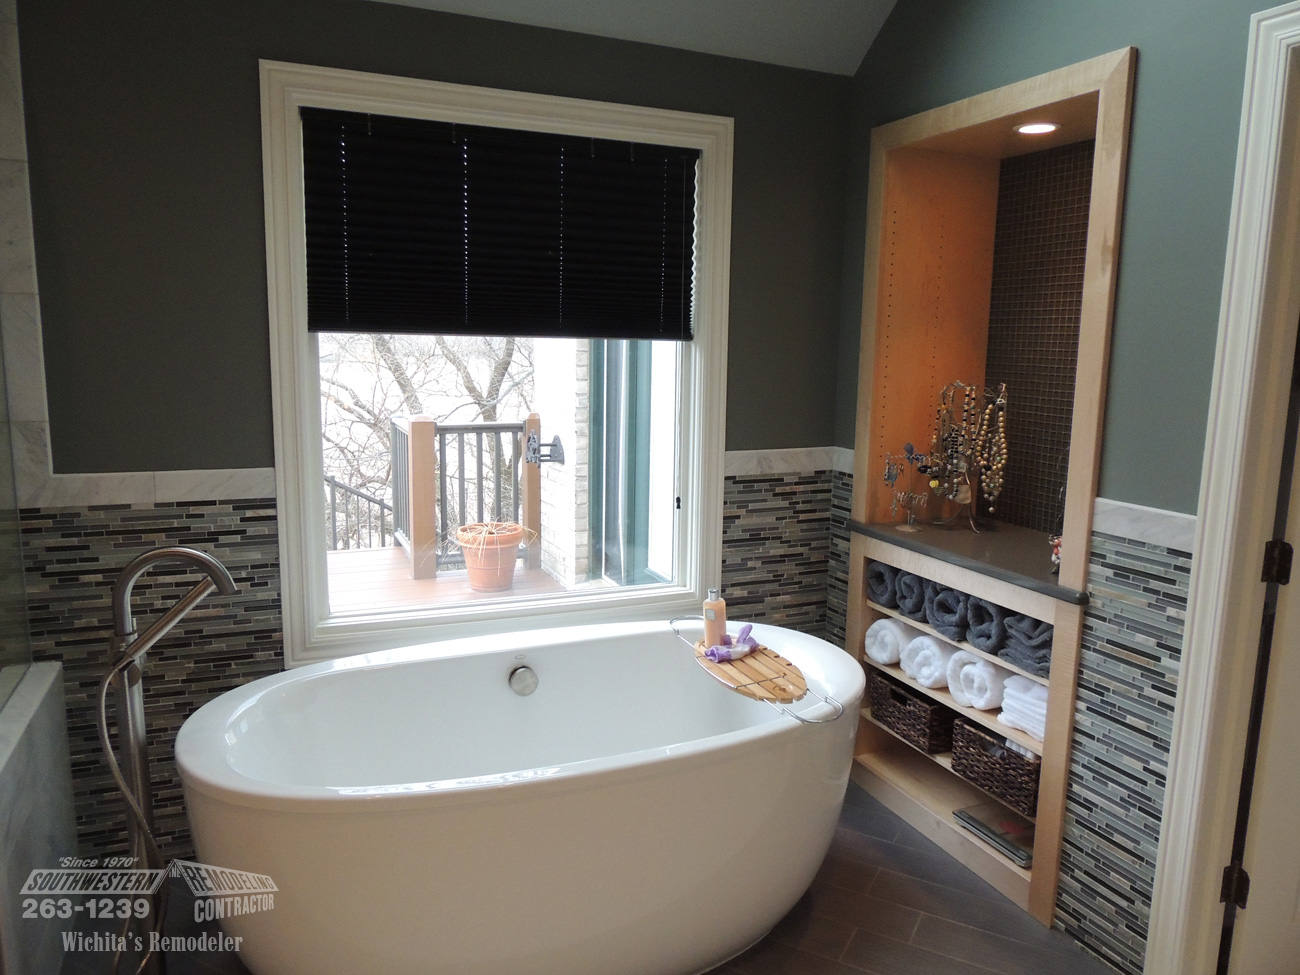 portland bathroom oregon remodeling remarkable contractor regarding remodel or